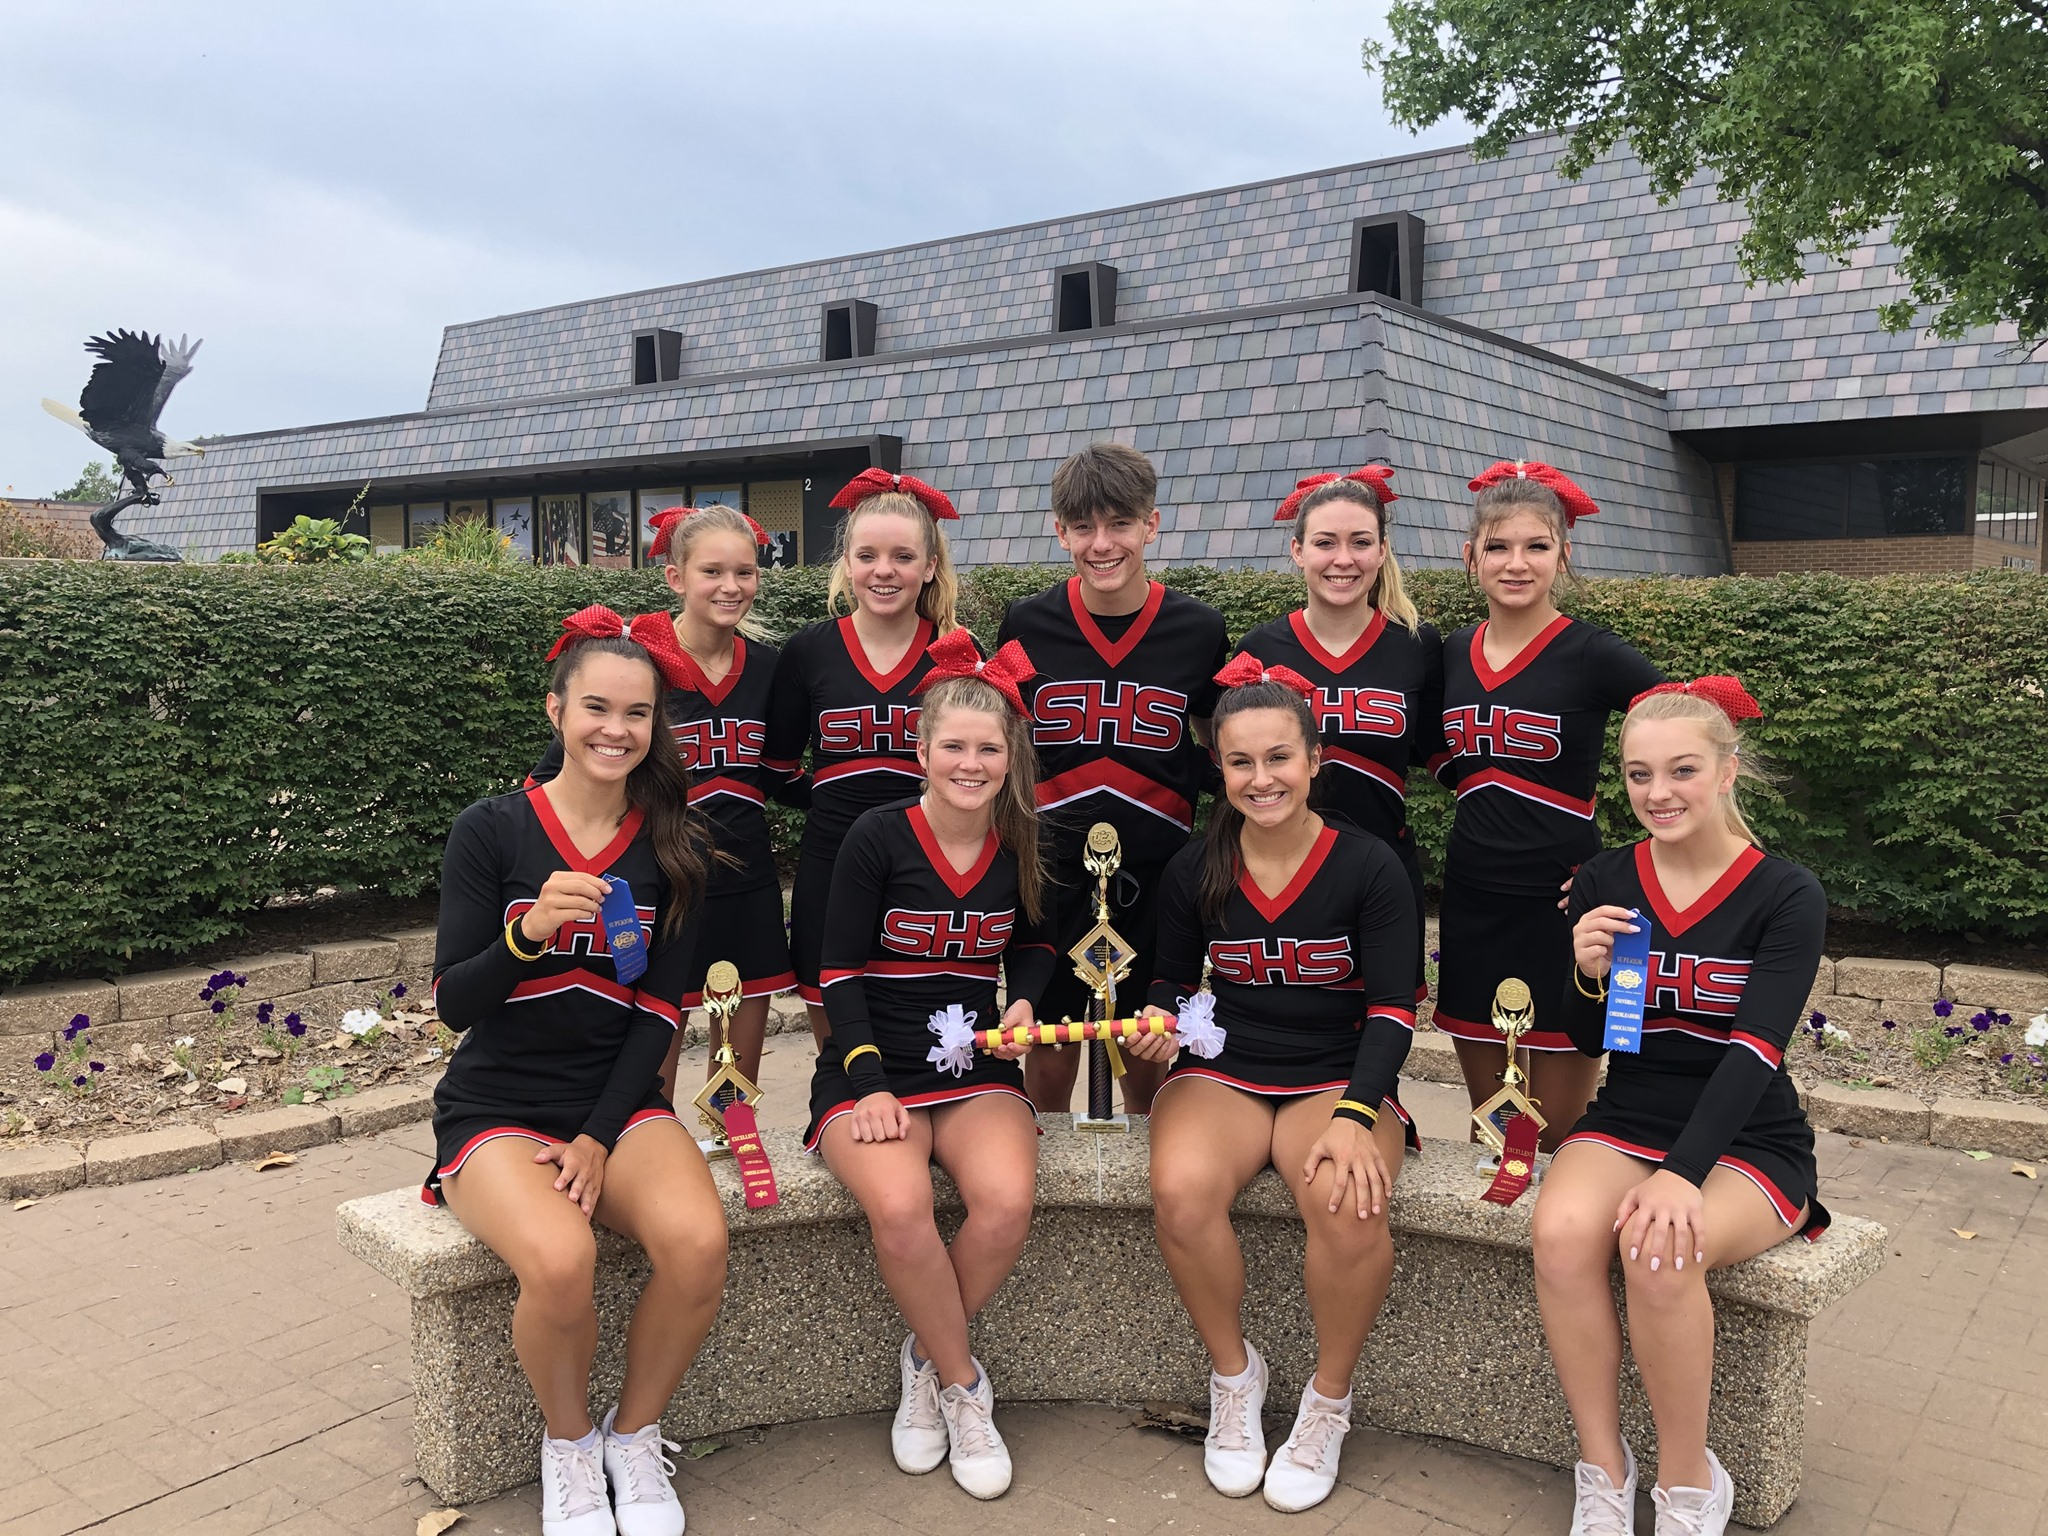 Sedgwick cheerleaders compete for the first time